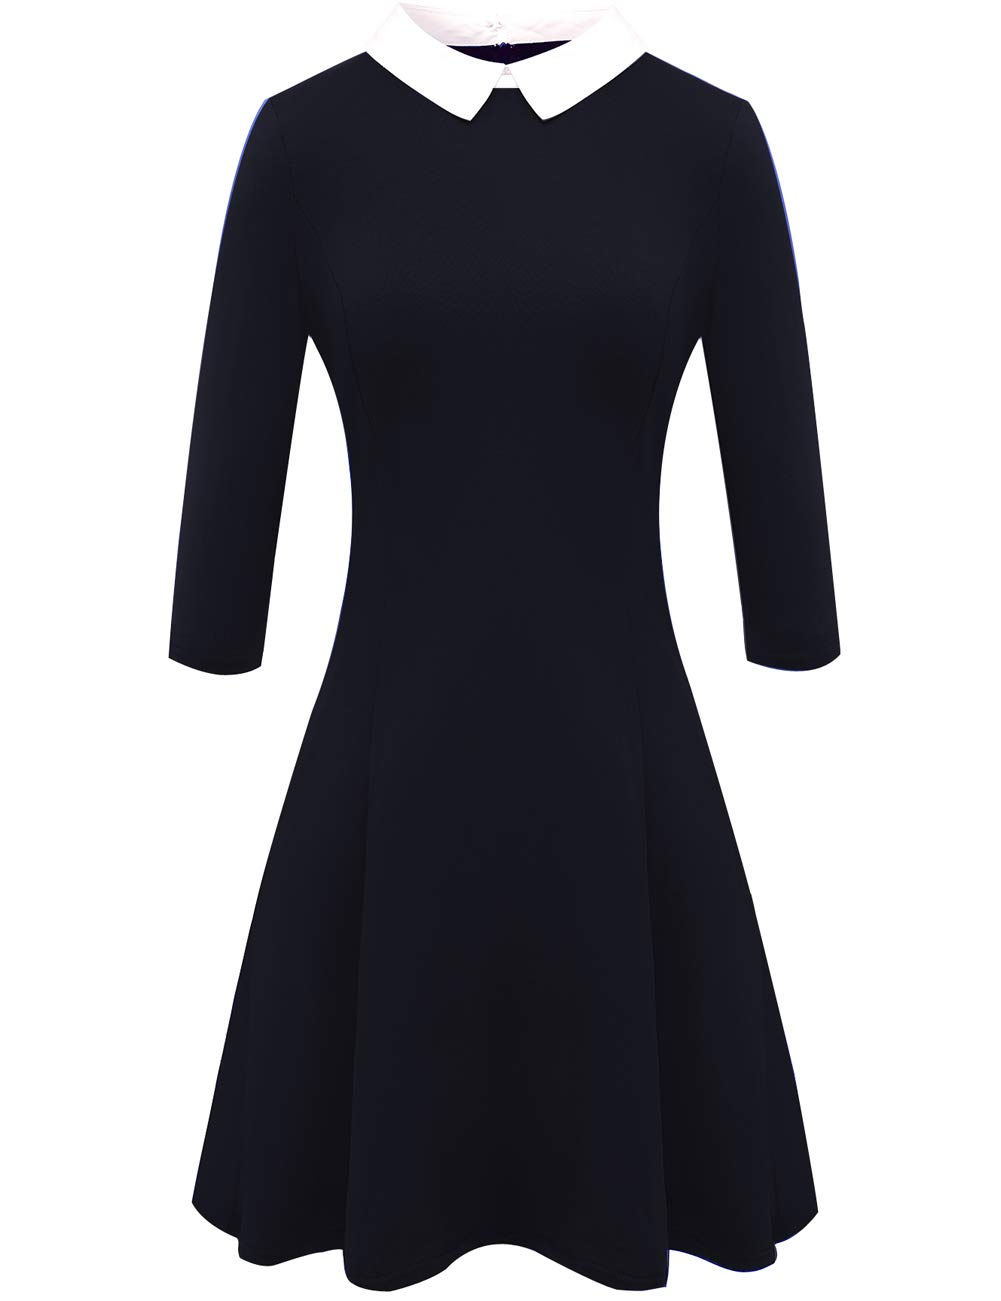 Available at Amazon: Melynnco Women's 3/4 Sleeve Casual Dress Wear to Work with Peter Pan Collar for Party